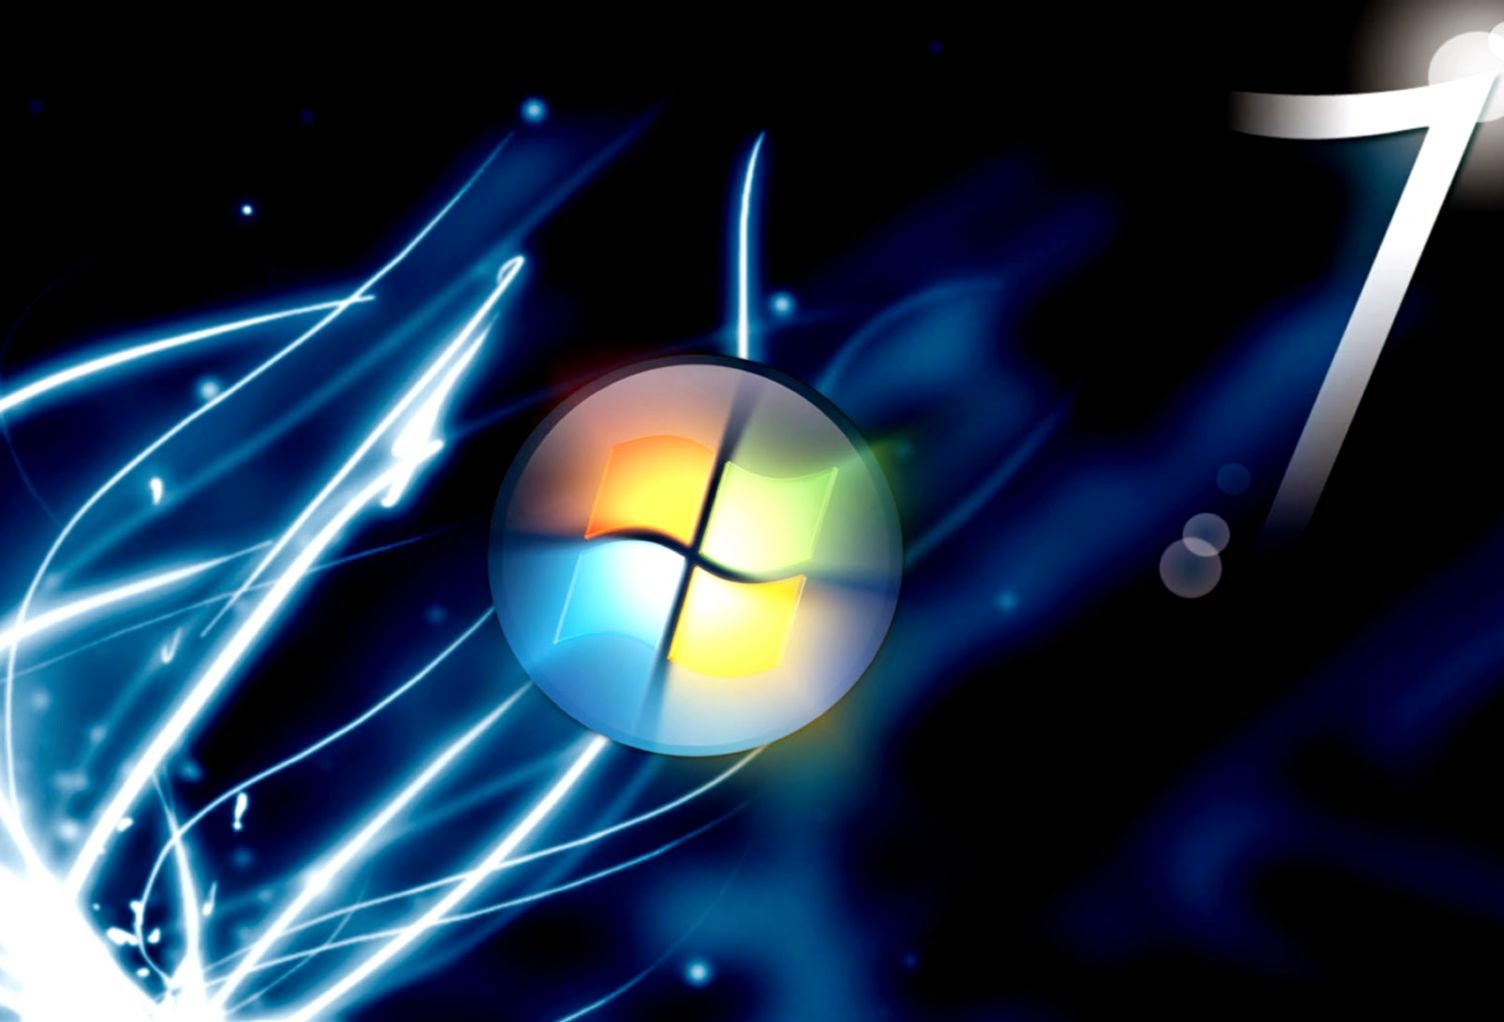 windows 7 animated wallpaper cool hd wallpapers